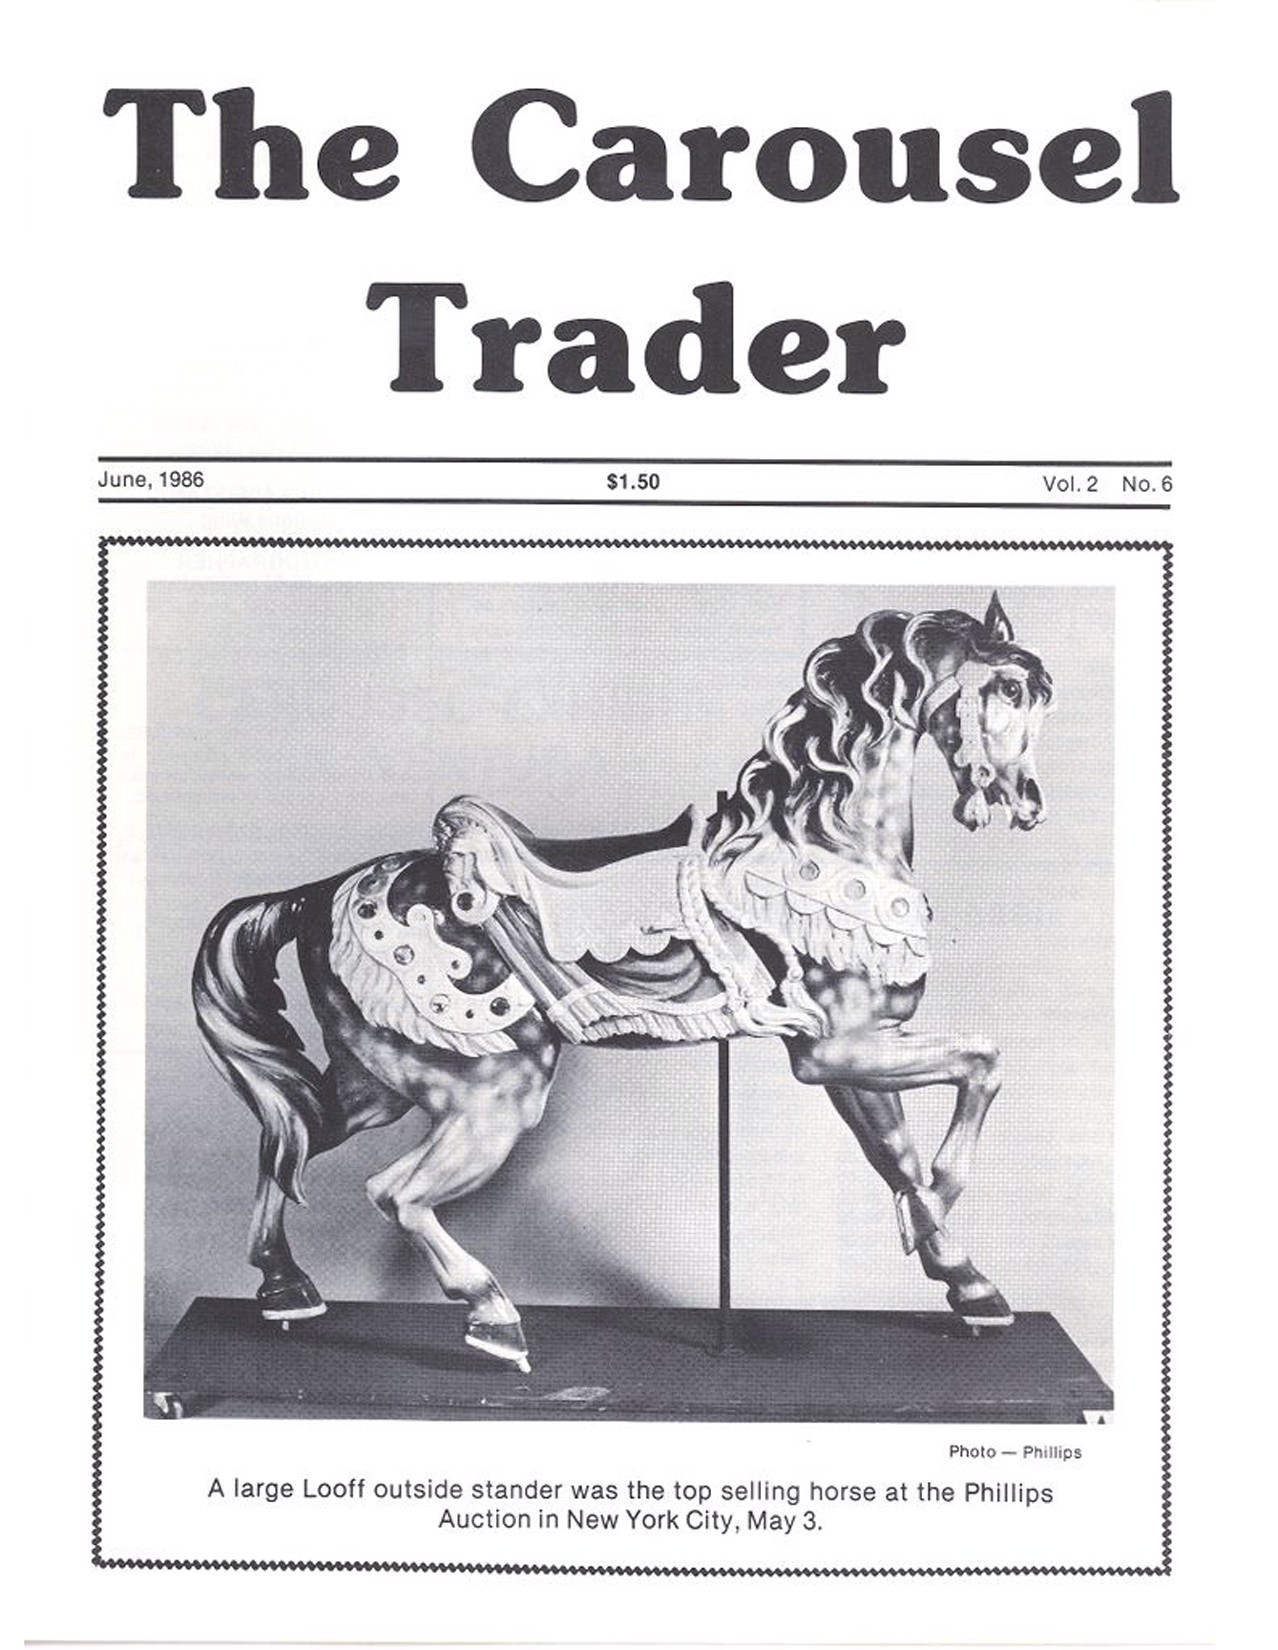 Carousel-News-06_1986-cover-Looff-carousel-horse-Phillips-NYC-Auction